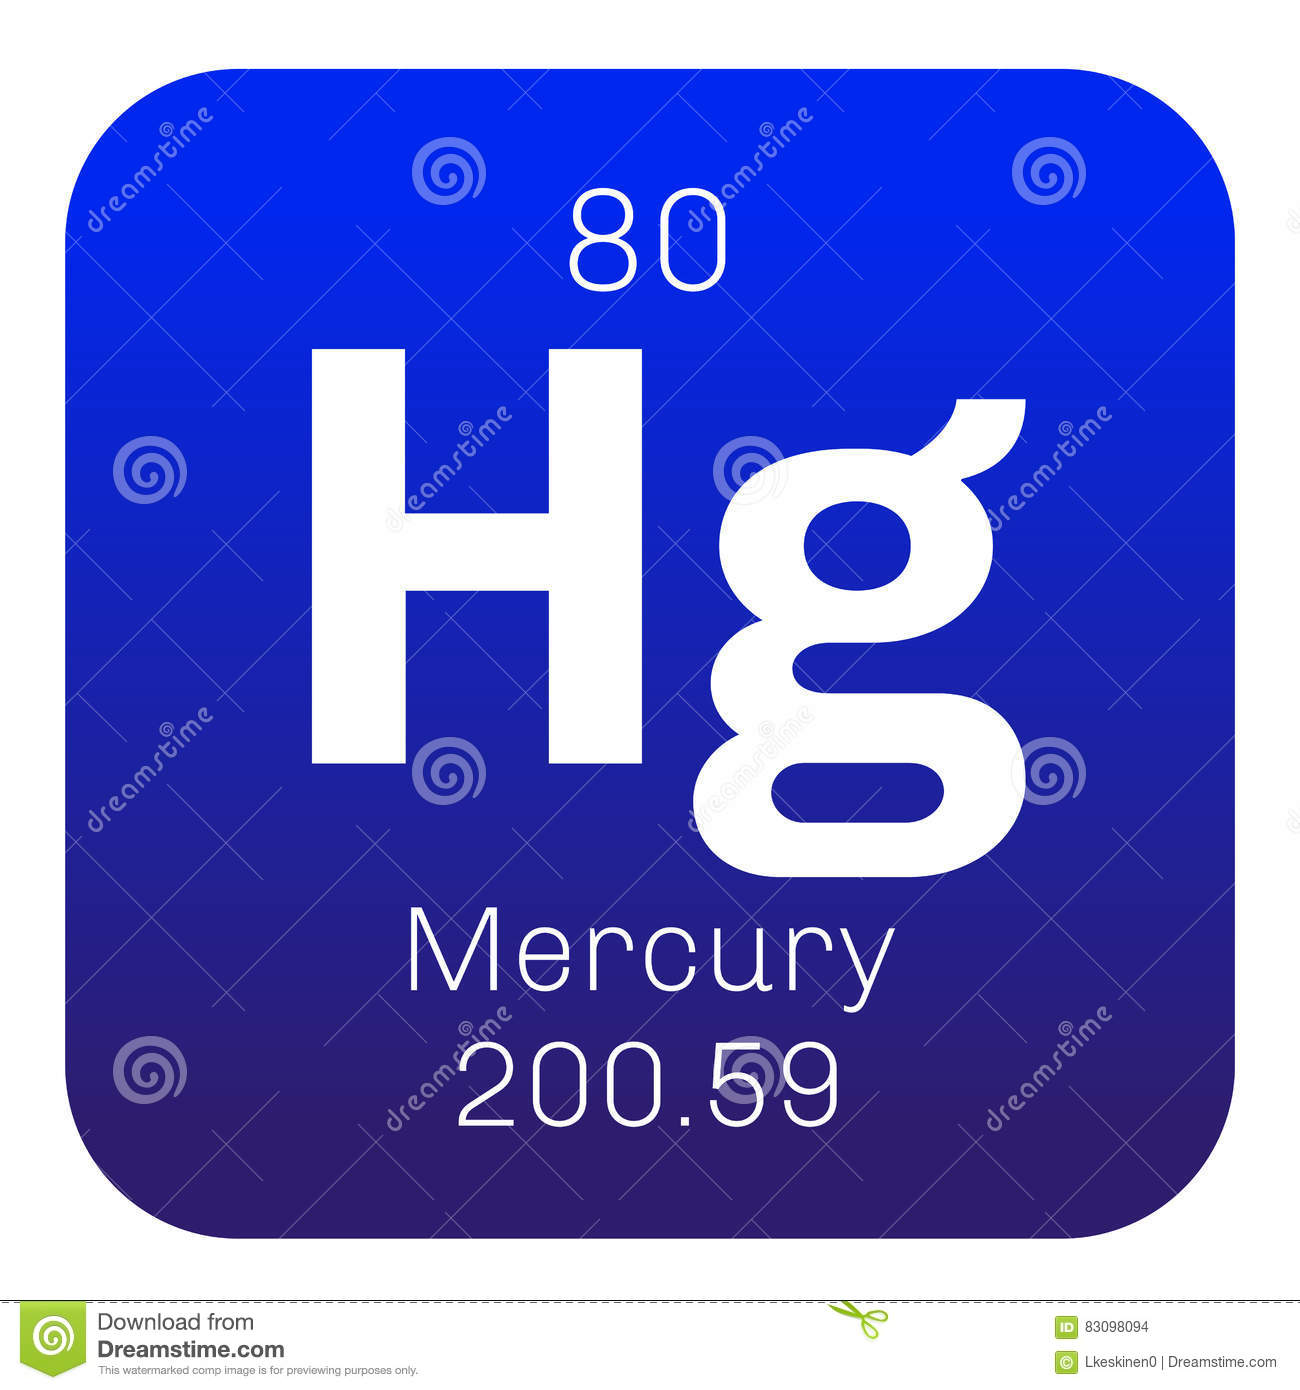 Mercury Chemical Element Stock Vector Illustration Of Simple 83098094